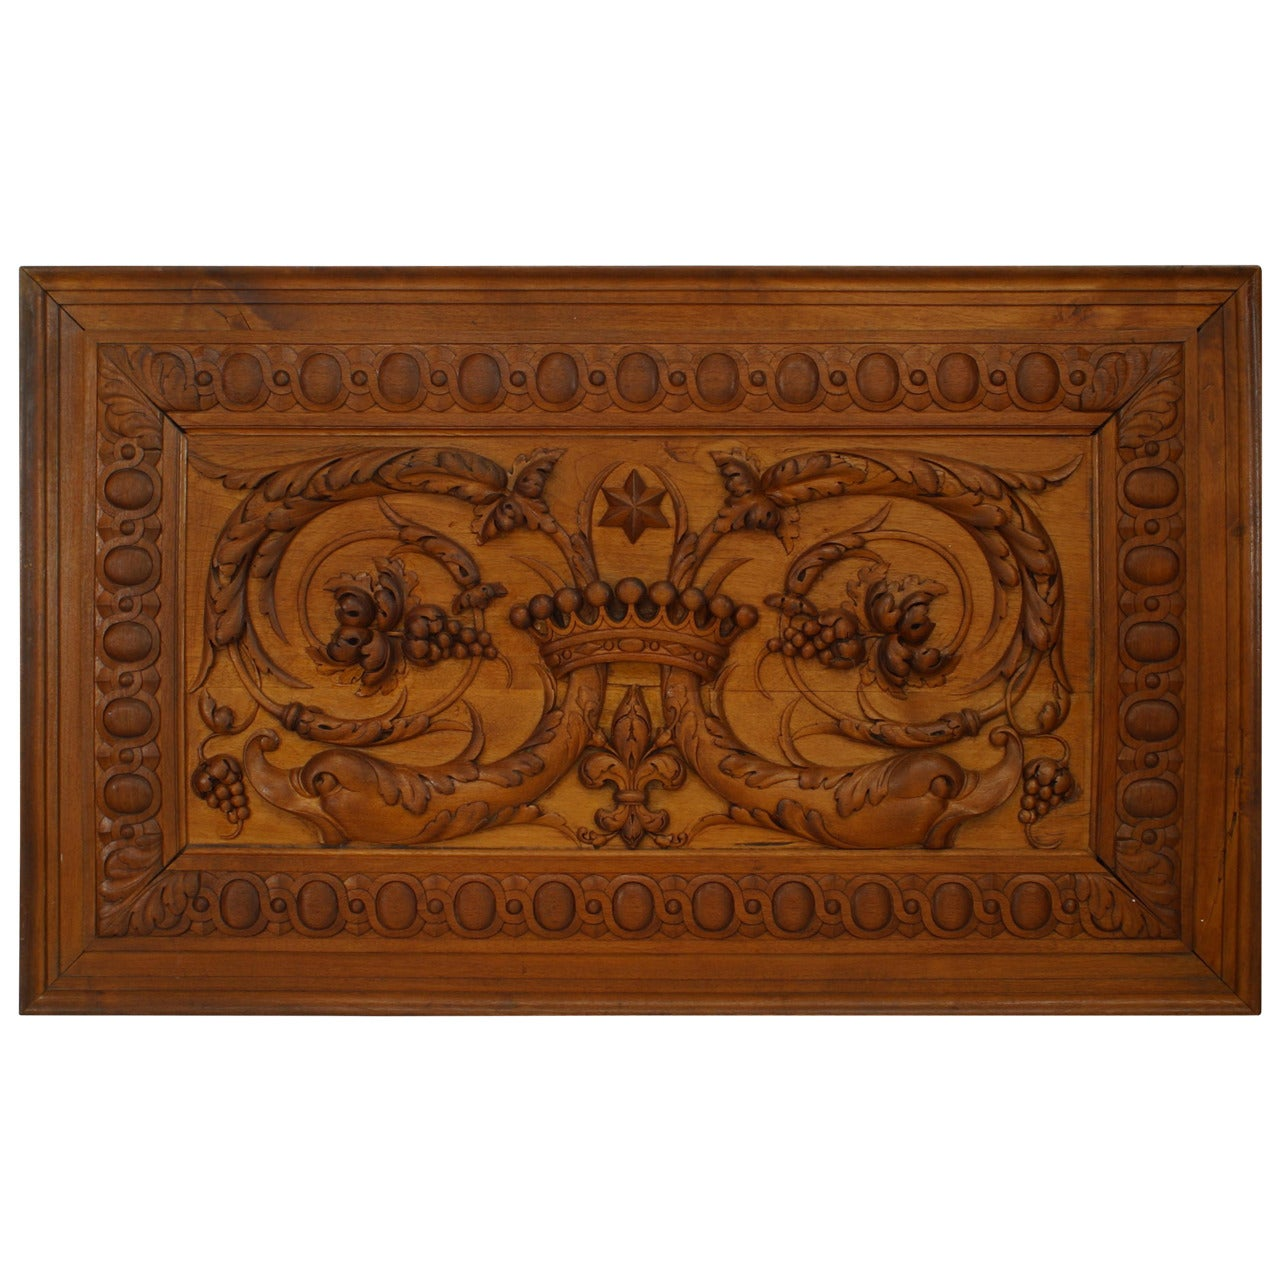 19th Century Italian Neoclassical Style, Relief Carved Walnut Panel